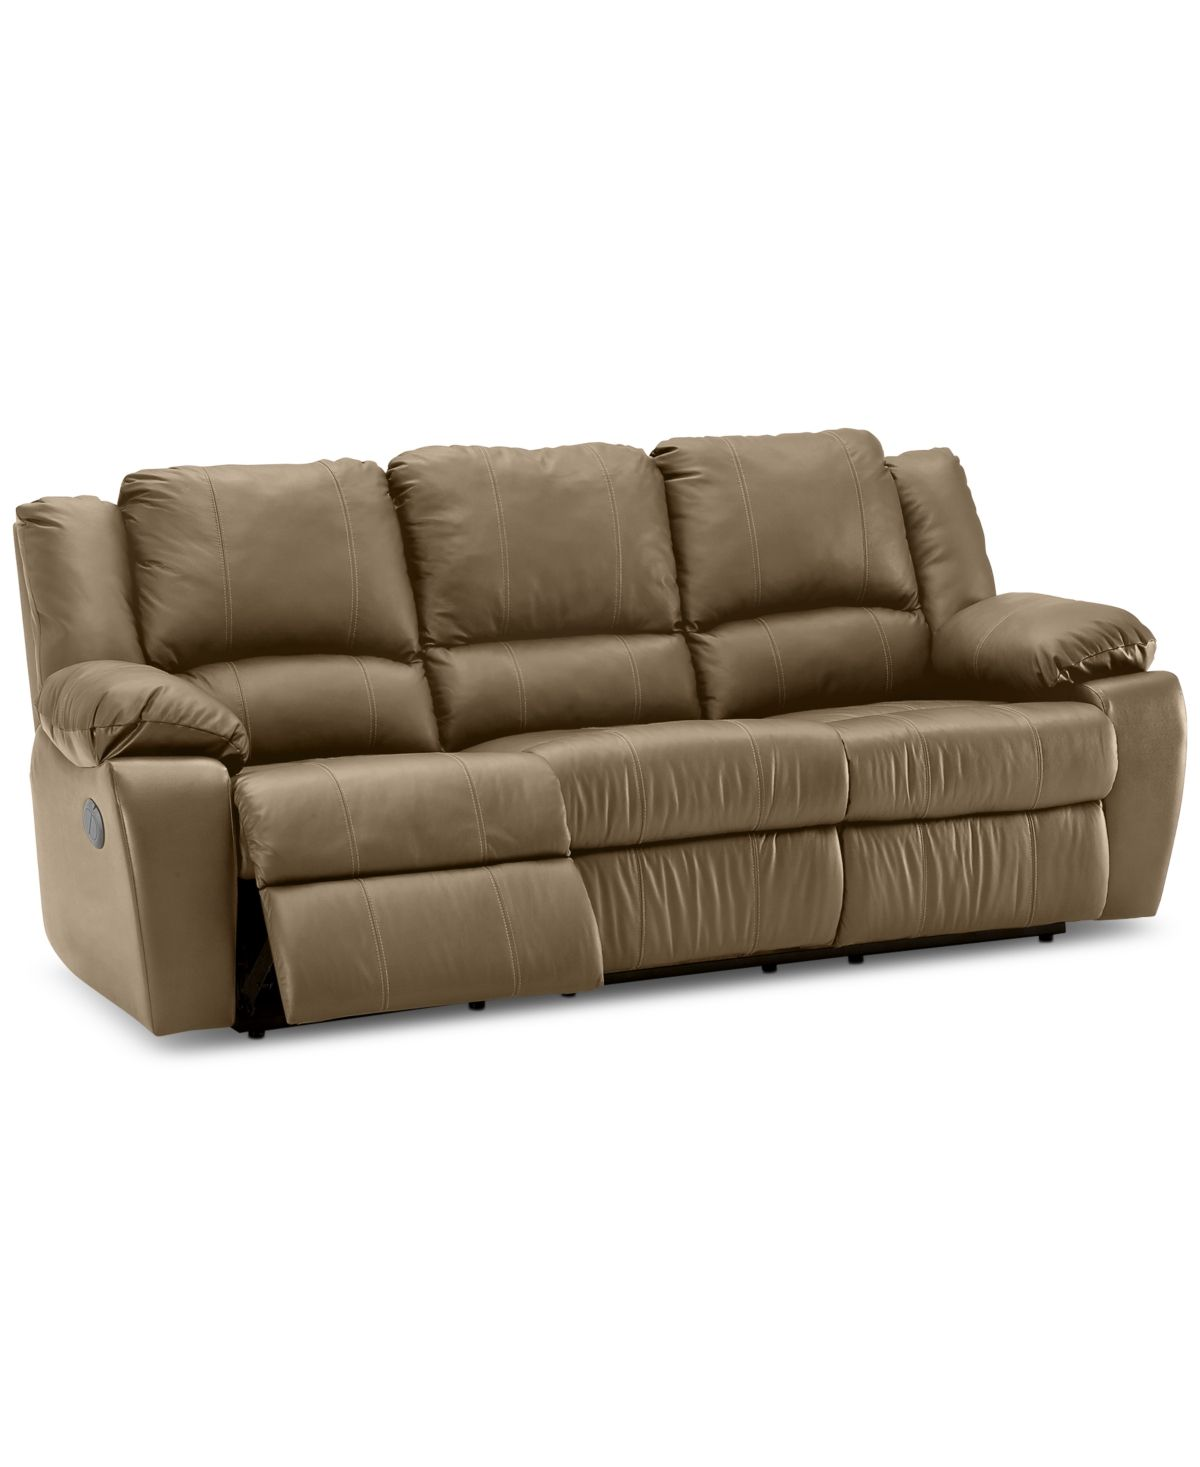 Furniture Kovin 90 In 2020 Power Recliners Leather Recliner Reclining Sofa